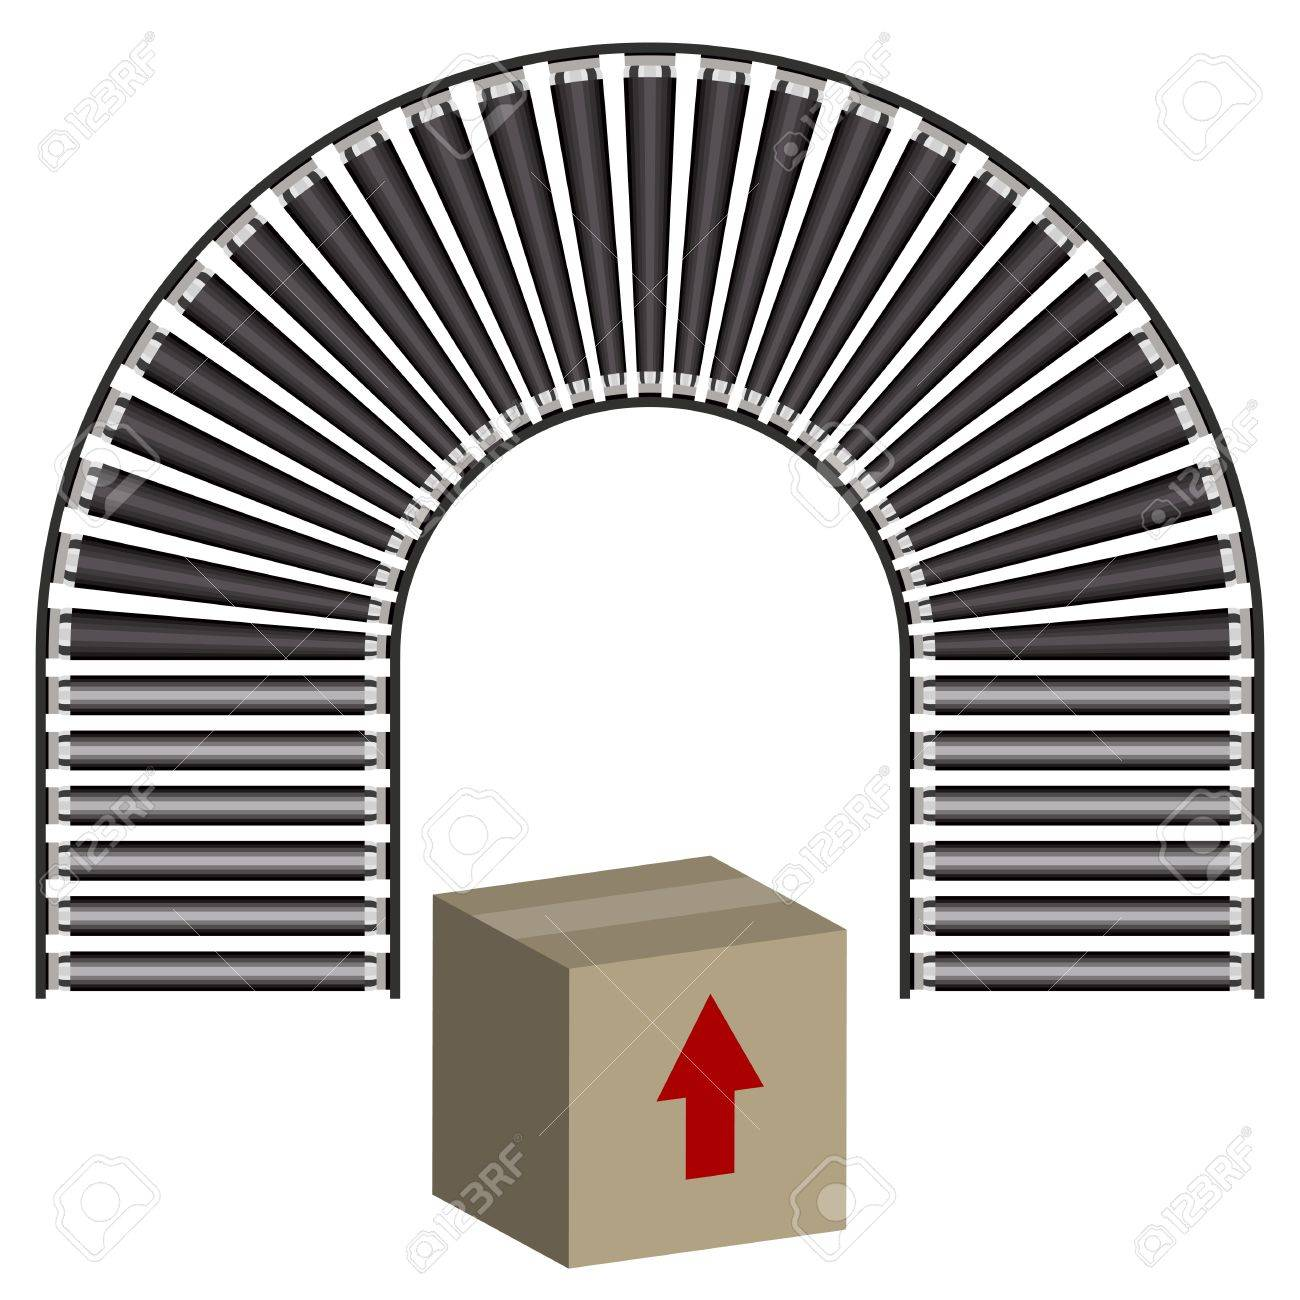 An image of a arc conveyor belt icon and box royalty free cliparts an image of a arc conveyor belt icon and box stock vector 14177757 buycottarizona Gallery